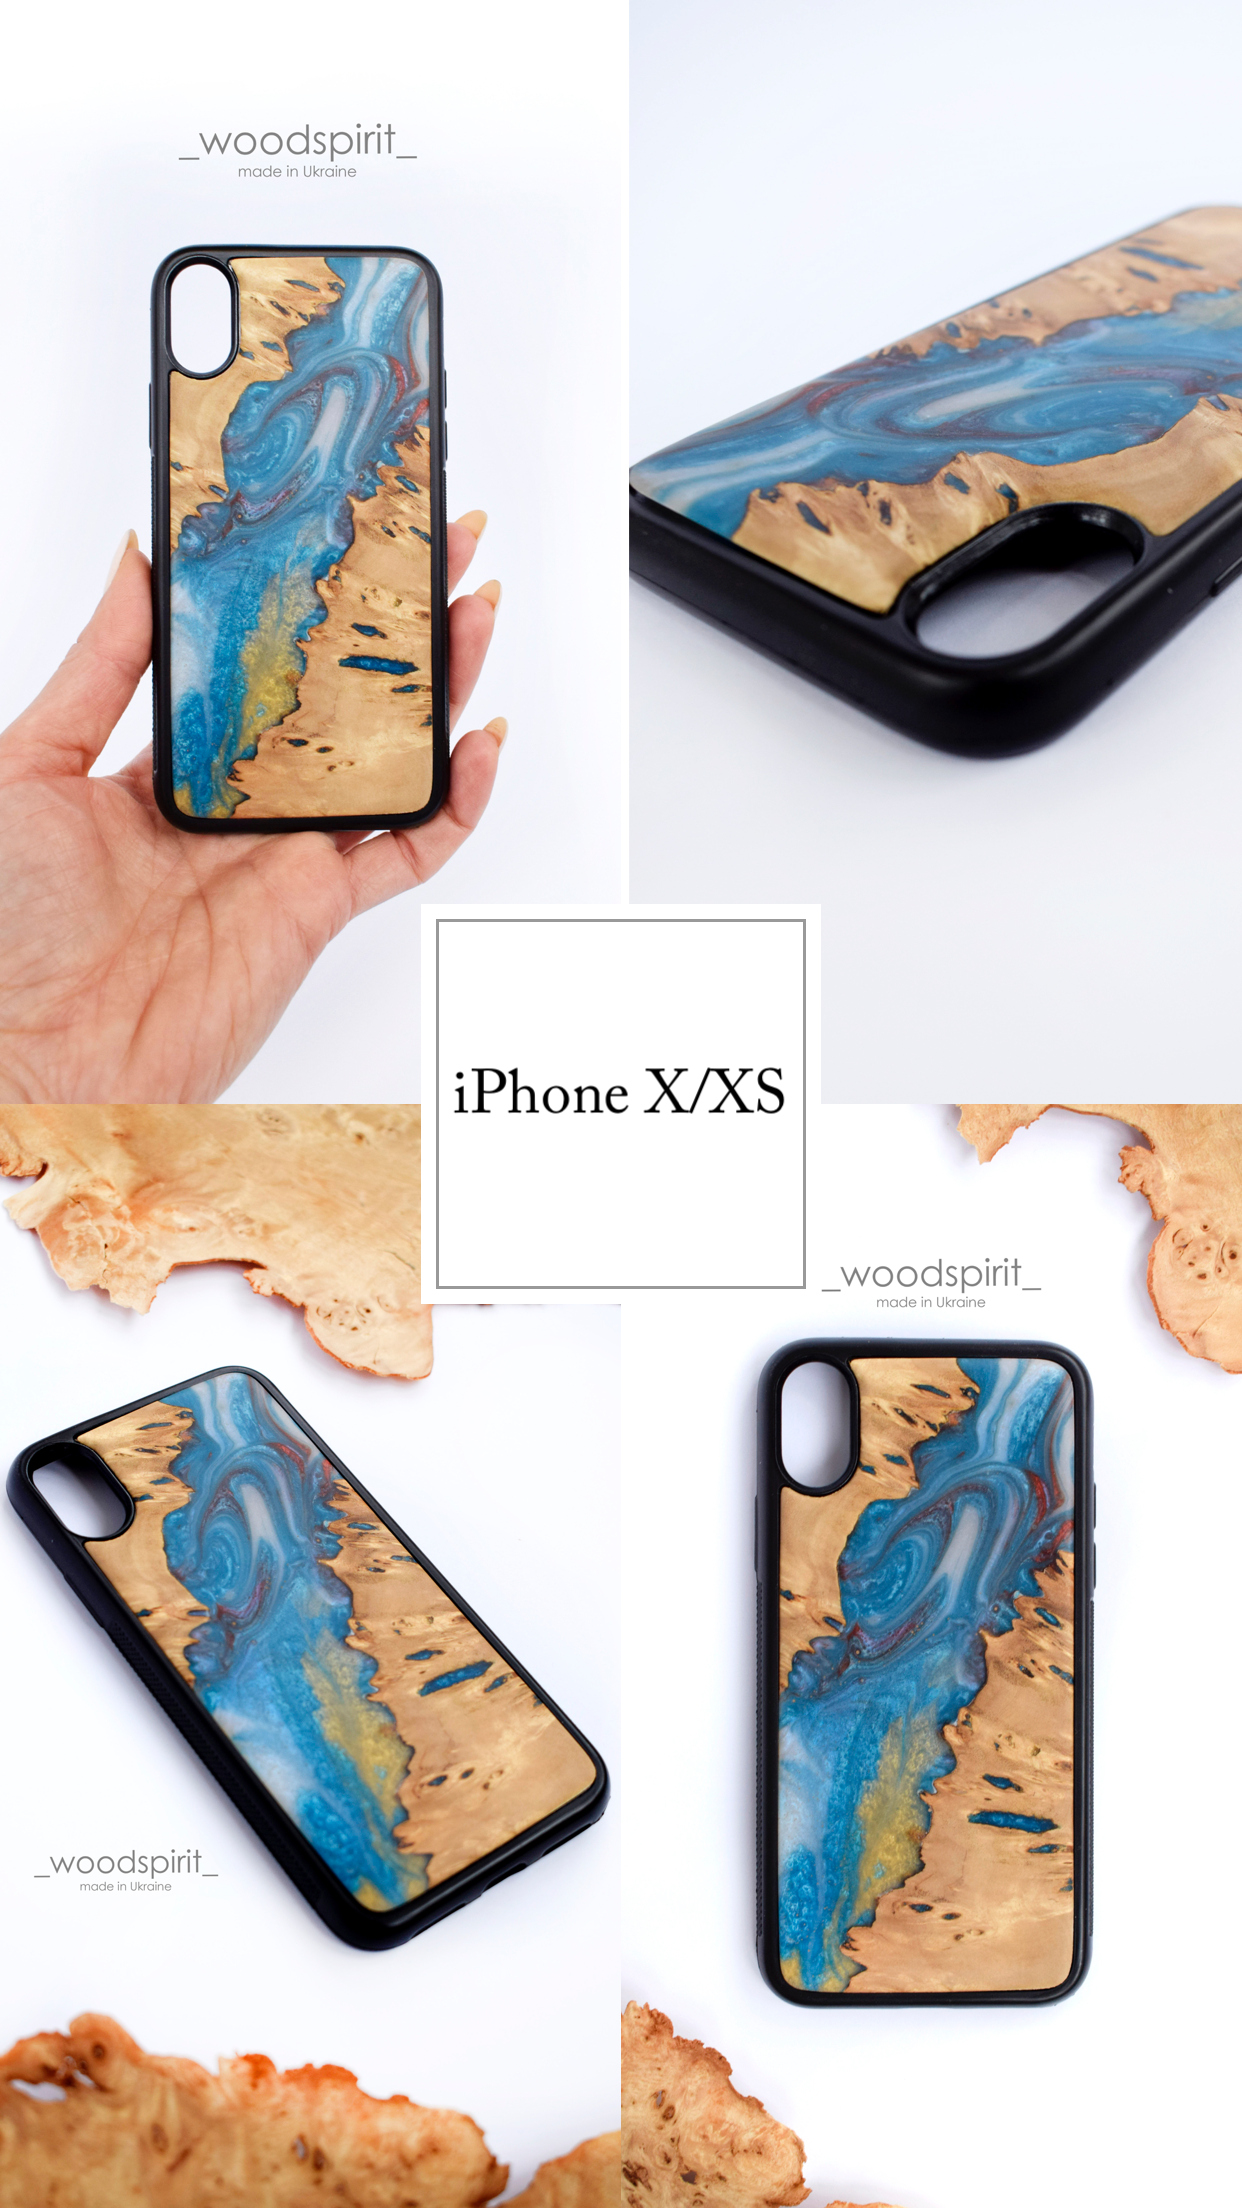 Wood And Resin Iphone X Xs Case Blue Epoxy Resin River Wooden Case Live Edge Resin And Wood Case Epoxy Resin Art Iphone 10s X Xs In 2020 Wood Case